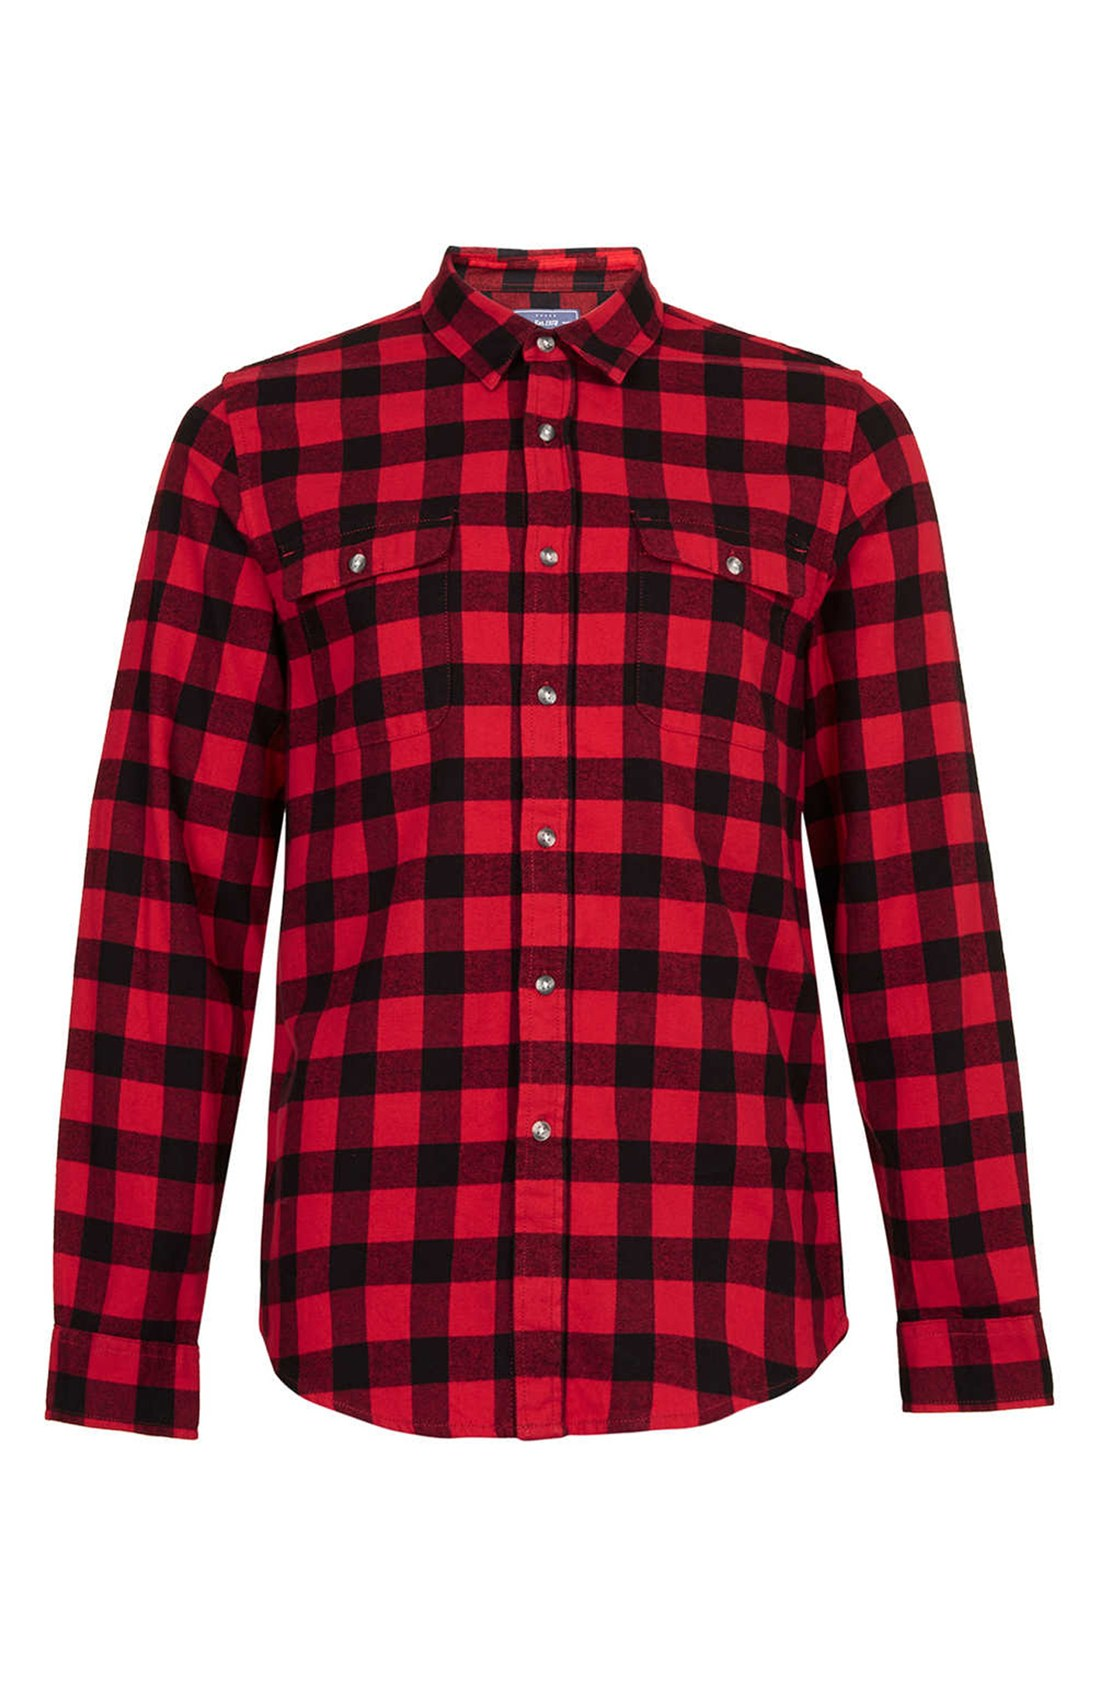 Topman Buffalo Check Flannel Shirt In Red For Men Black